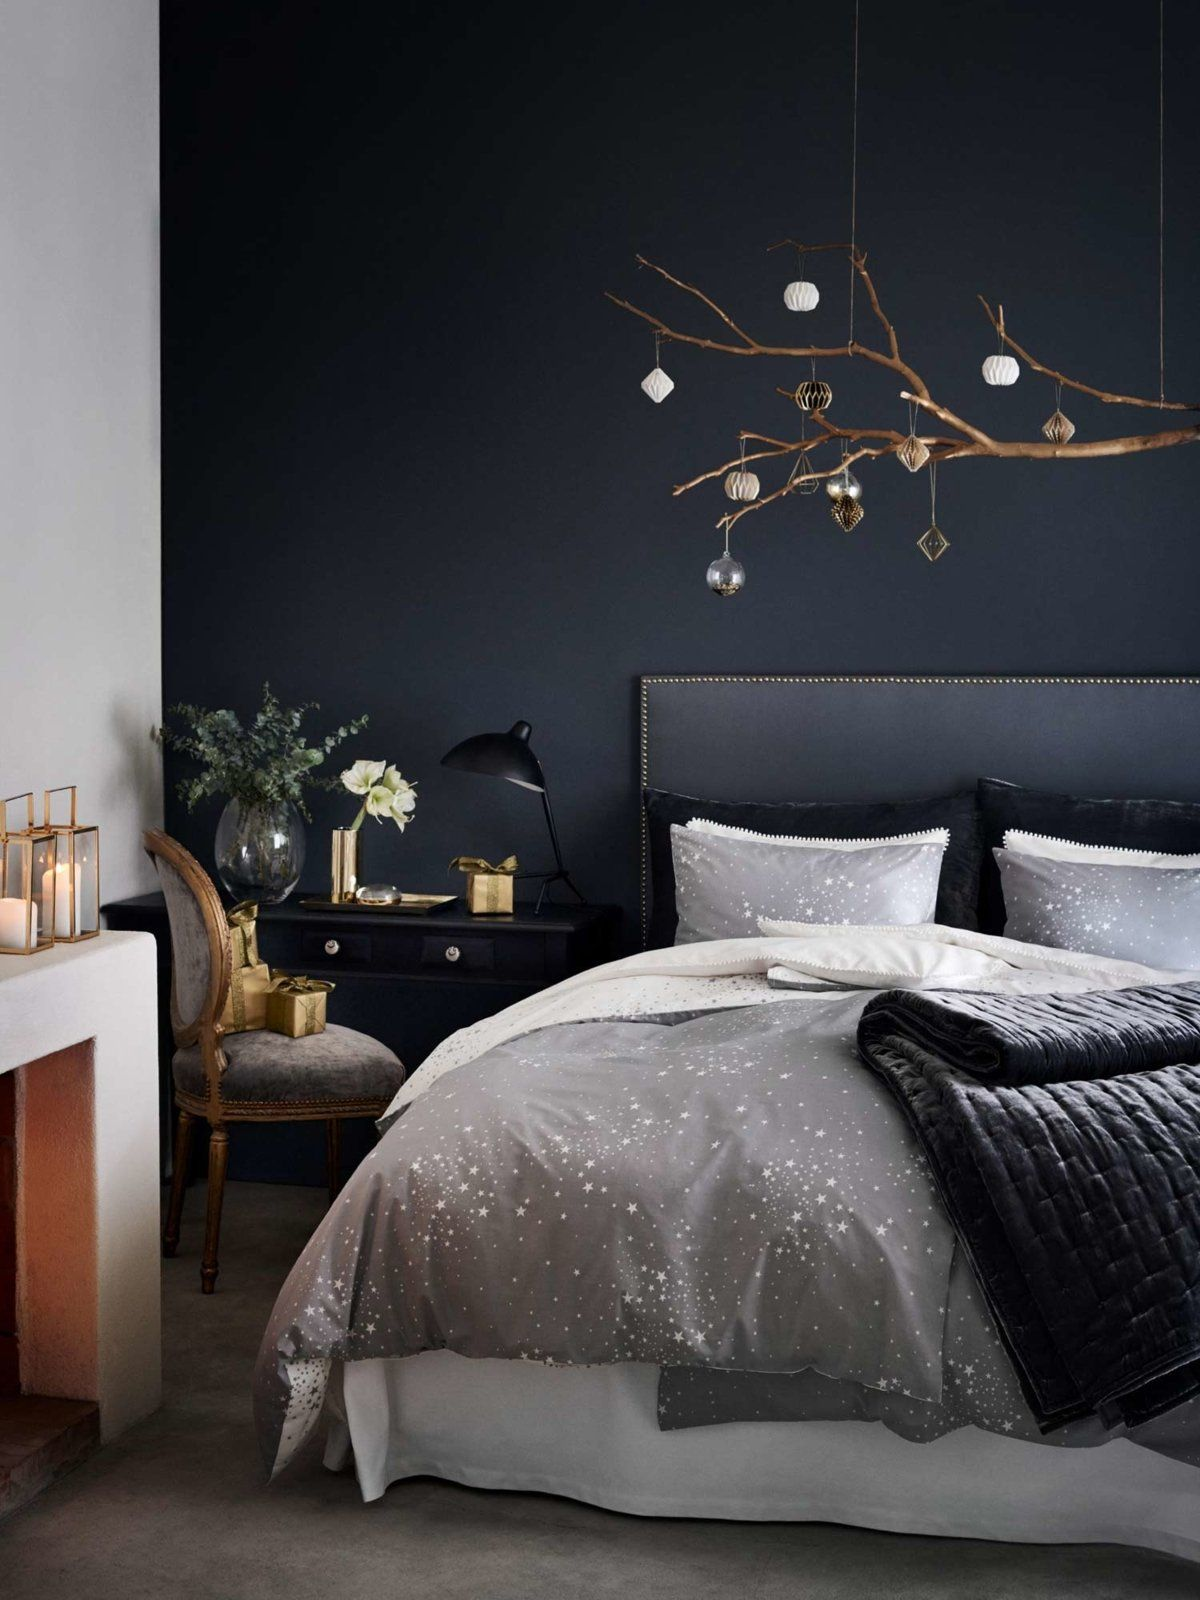 Wandfarben 2017 Schlafzimmer Wohntrends 2017 Deko Möbel Farben Co Navy Is The New Black